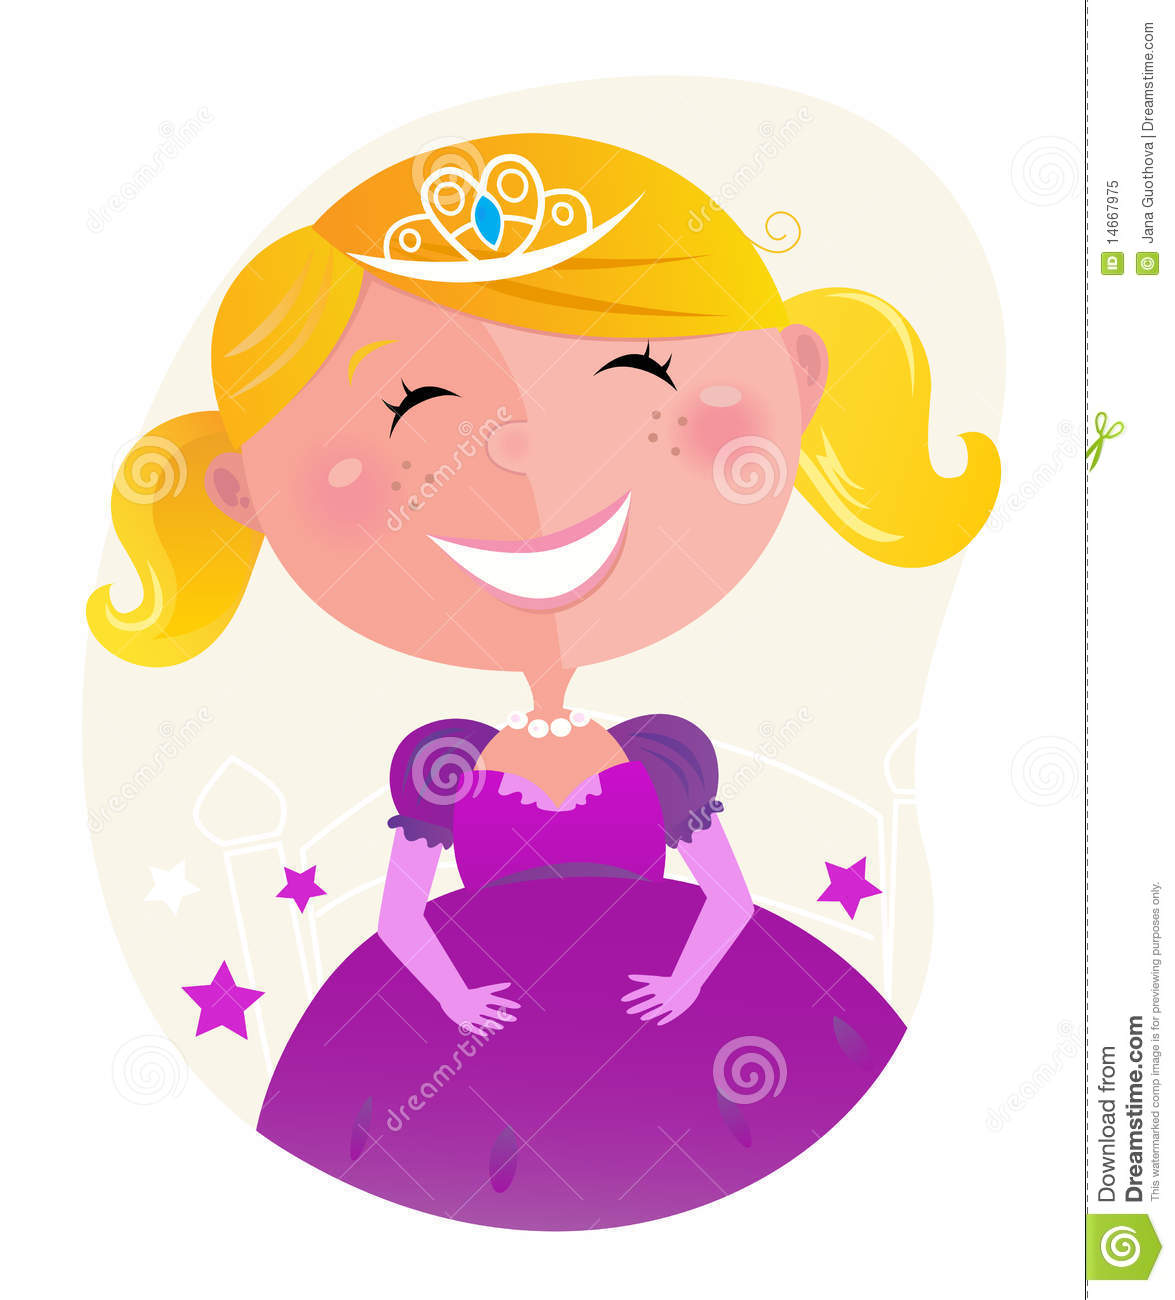 Jana Only Sweet Girls: Cute Little Princess In Pink Dress With Tiara Royalty Free